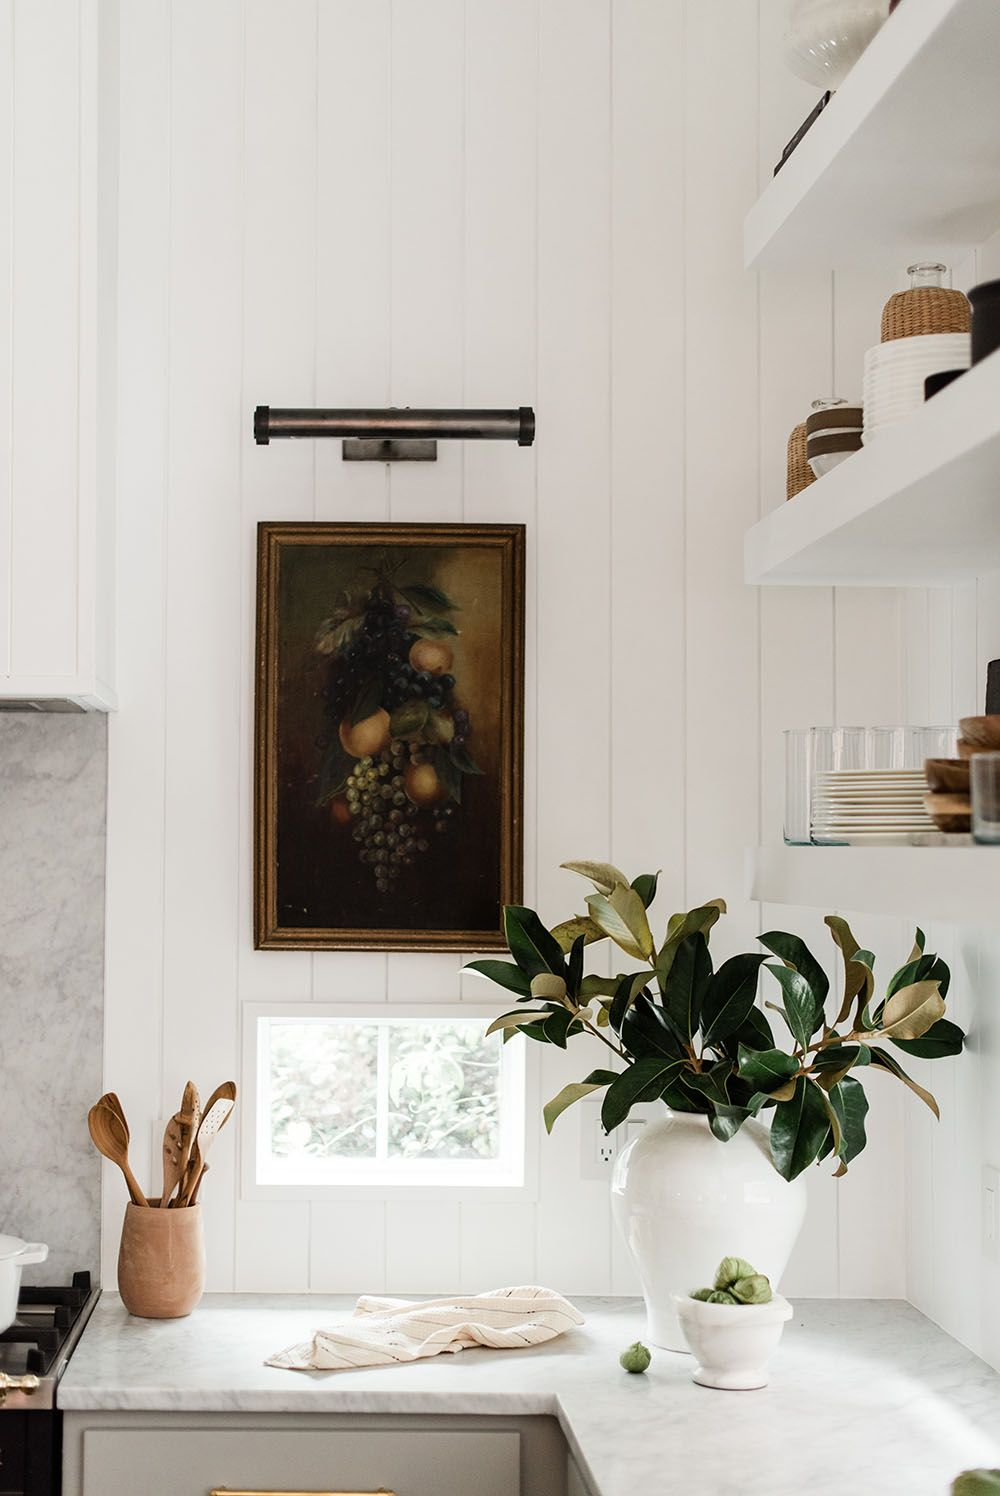 My Top 3 Home Decor Trends for 2020! - So Fresh & So Chic